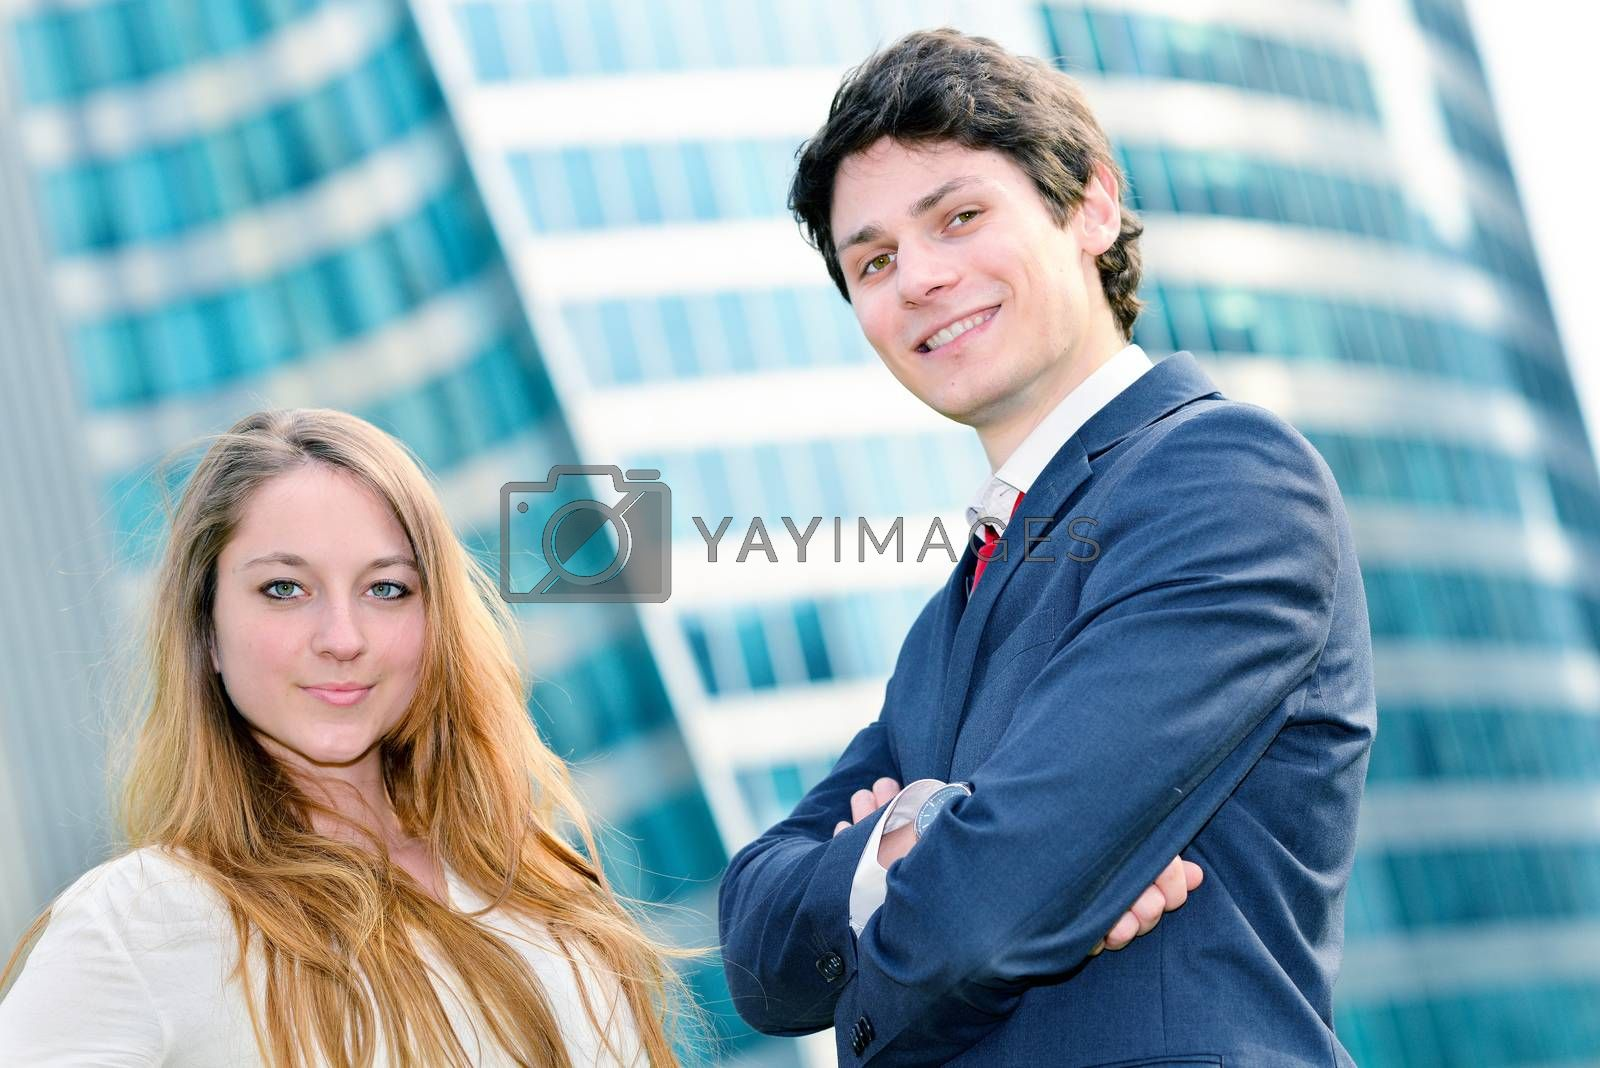 Royalty free image of expressive portrait Junior executives of company crossed arms by pixinoo